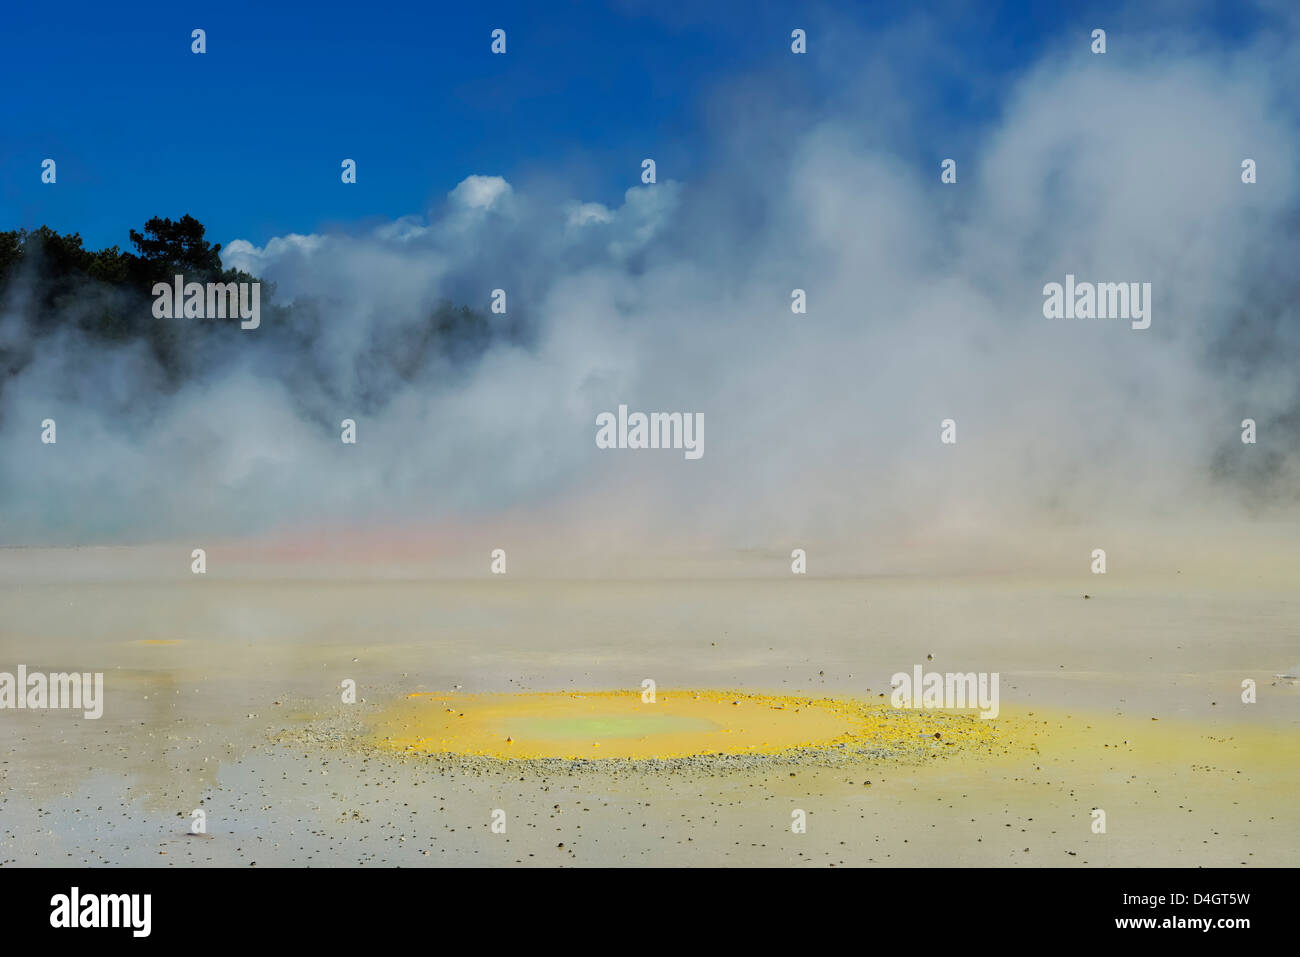 Waiotapu thermal area, Rotorua, North Island, New Zealand - Stock Image